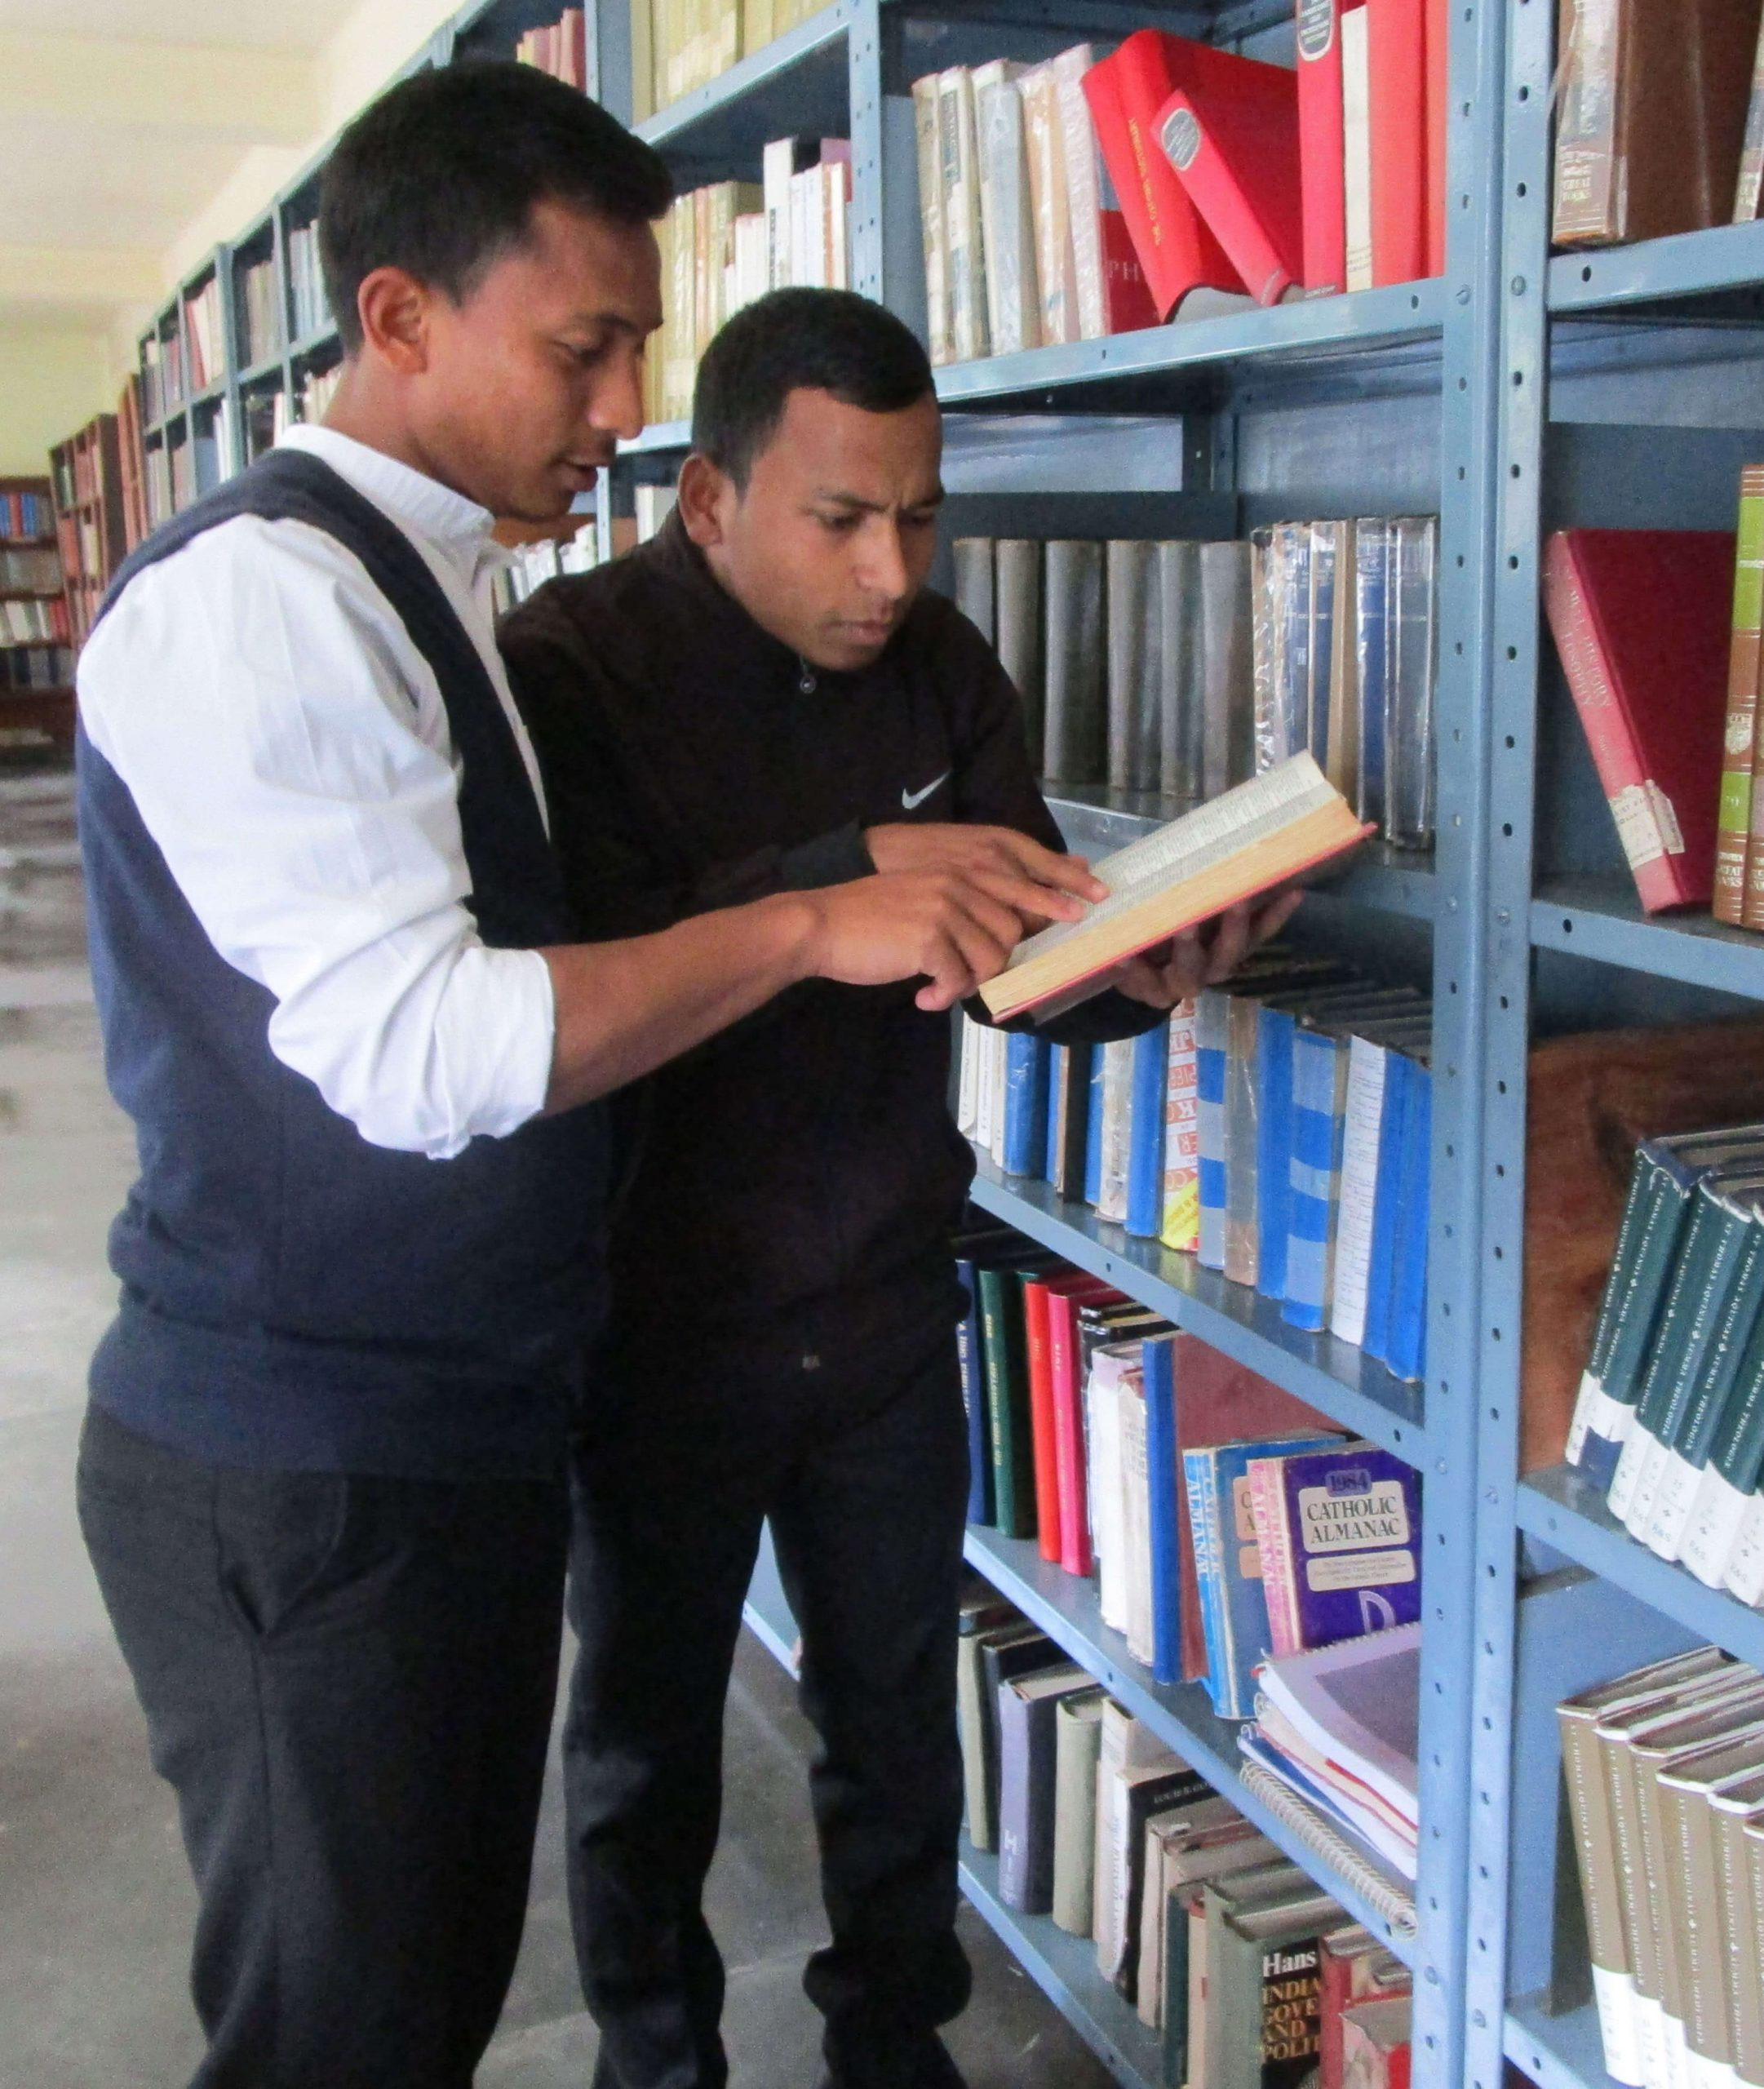 Seminarians helping each other study